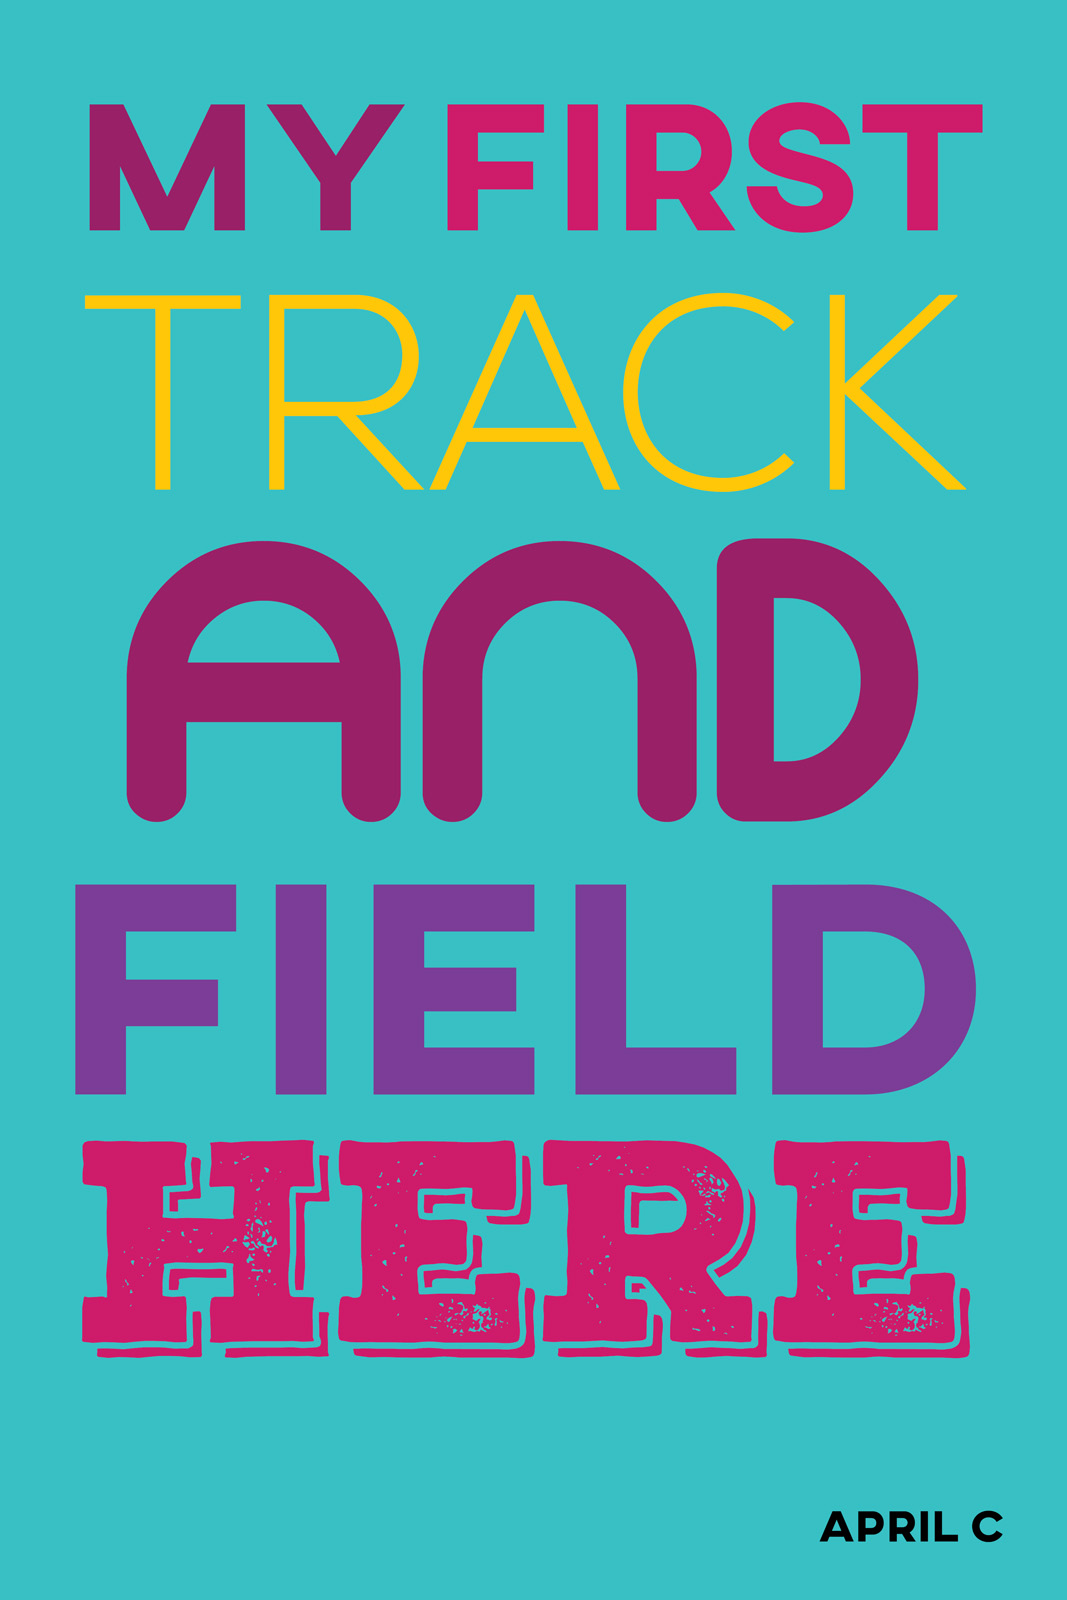 My first track and field here